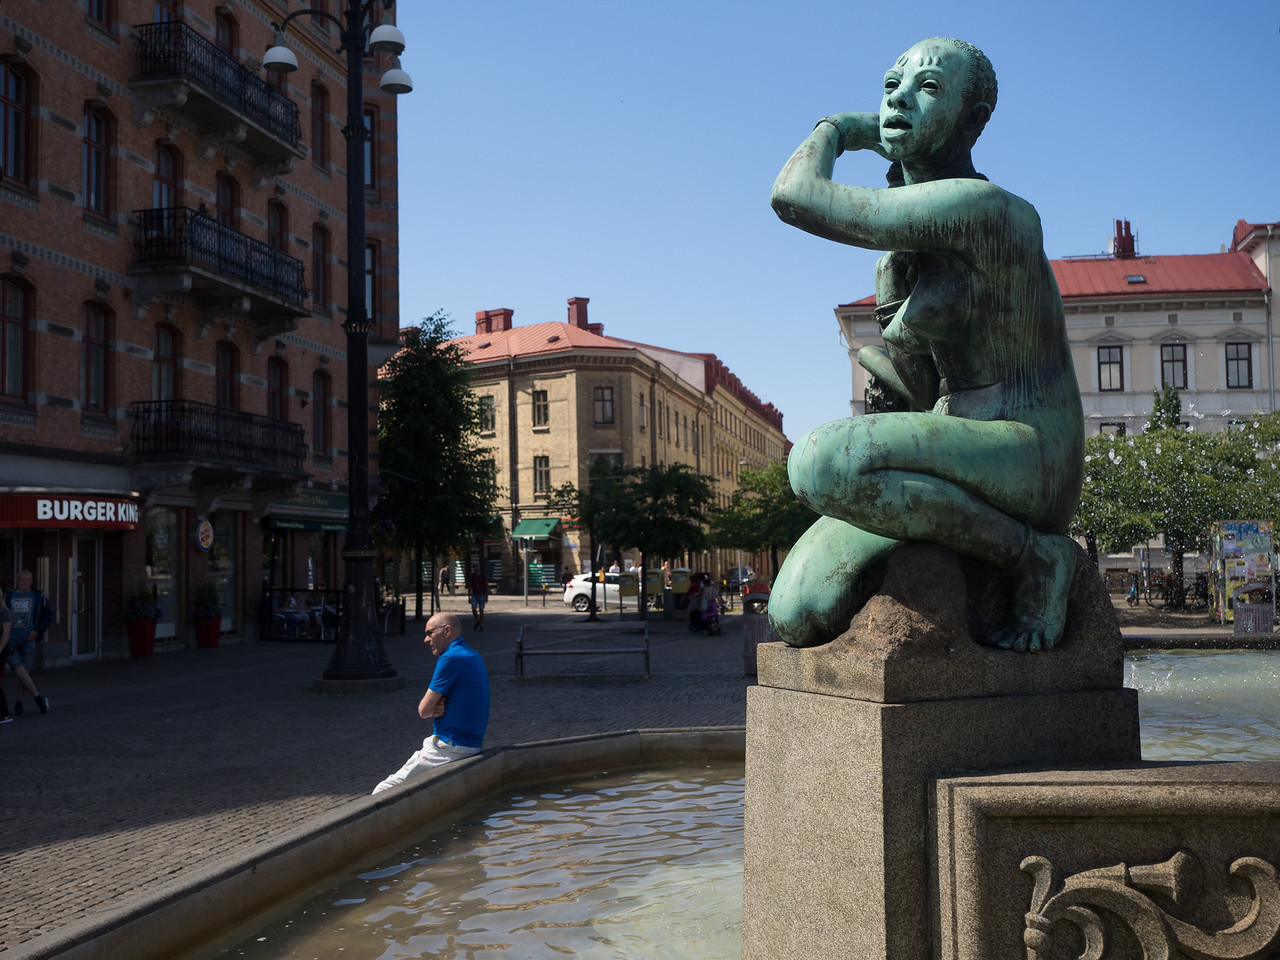 Lots of fine statues and squares in the city